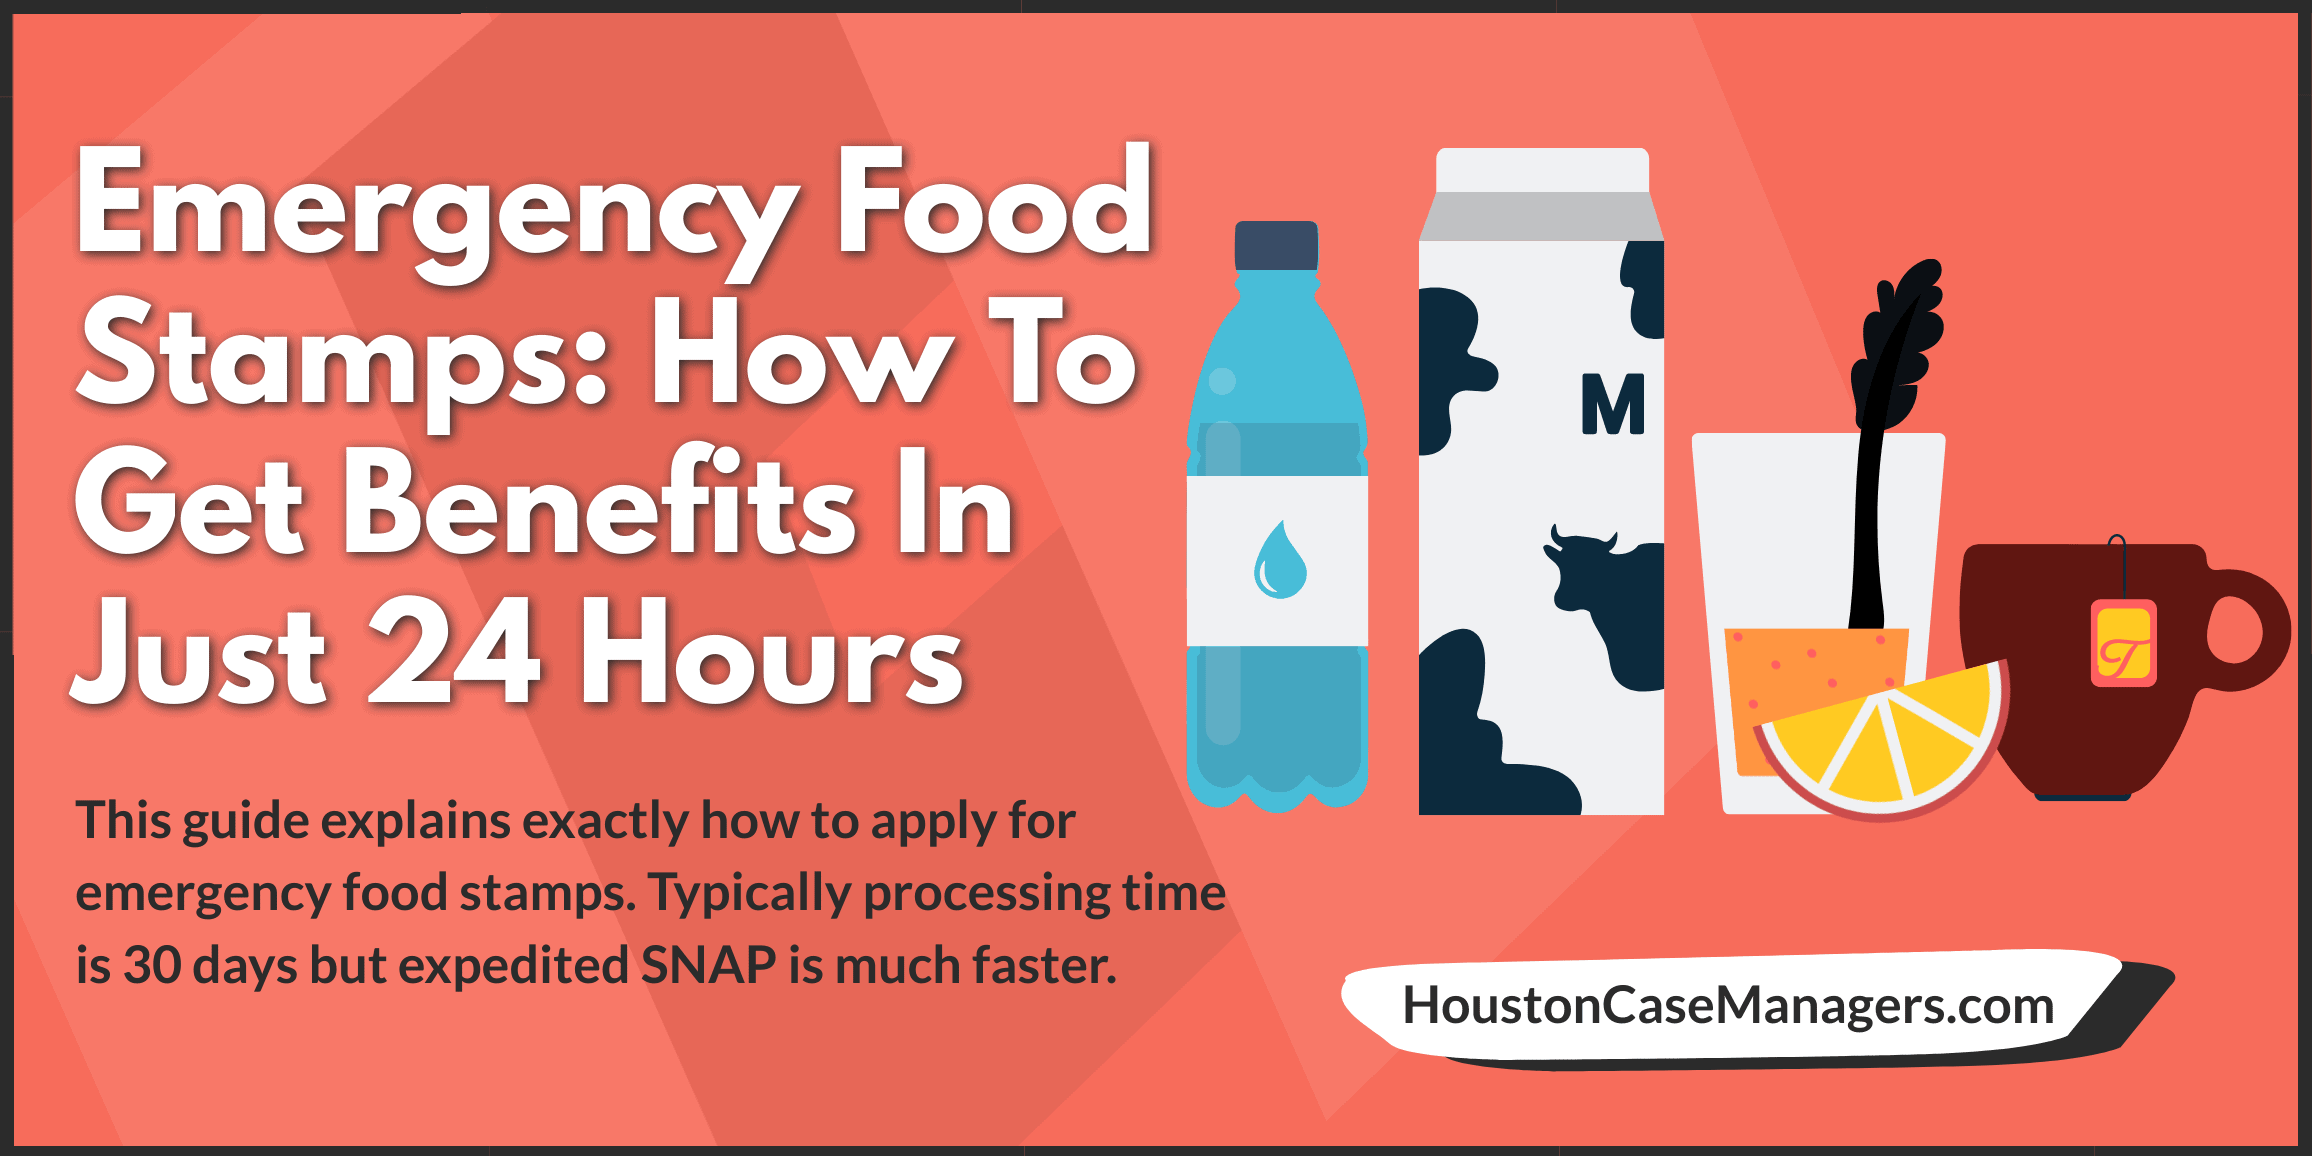 Emergency Food Stamps: How To Get Benefits In Just 24 Hours